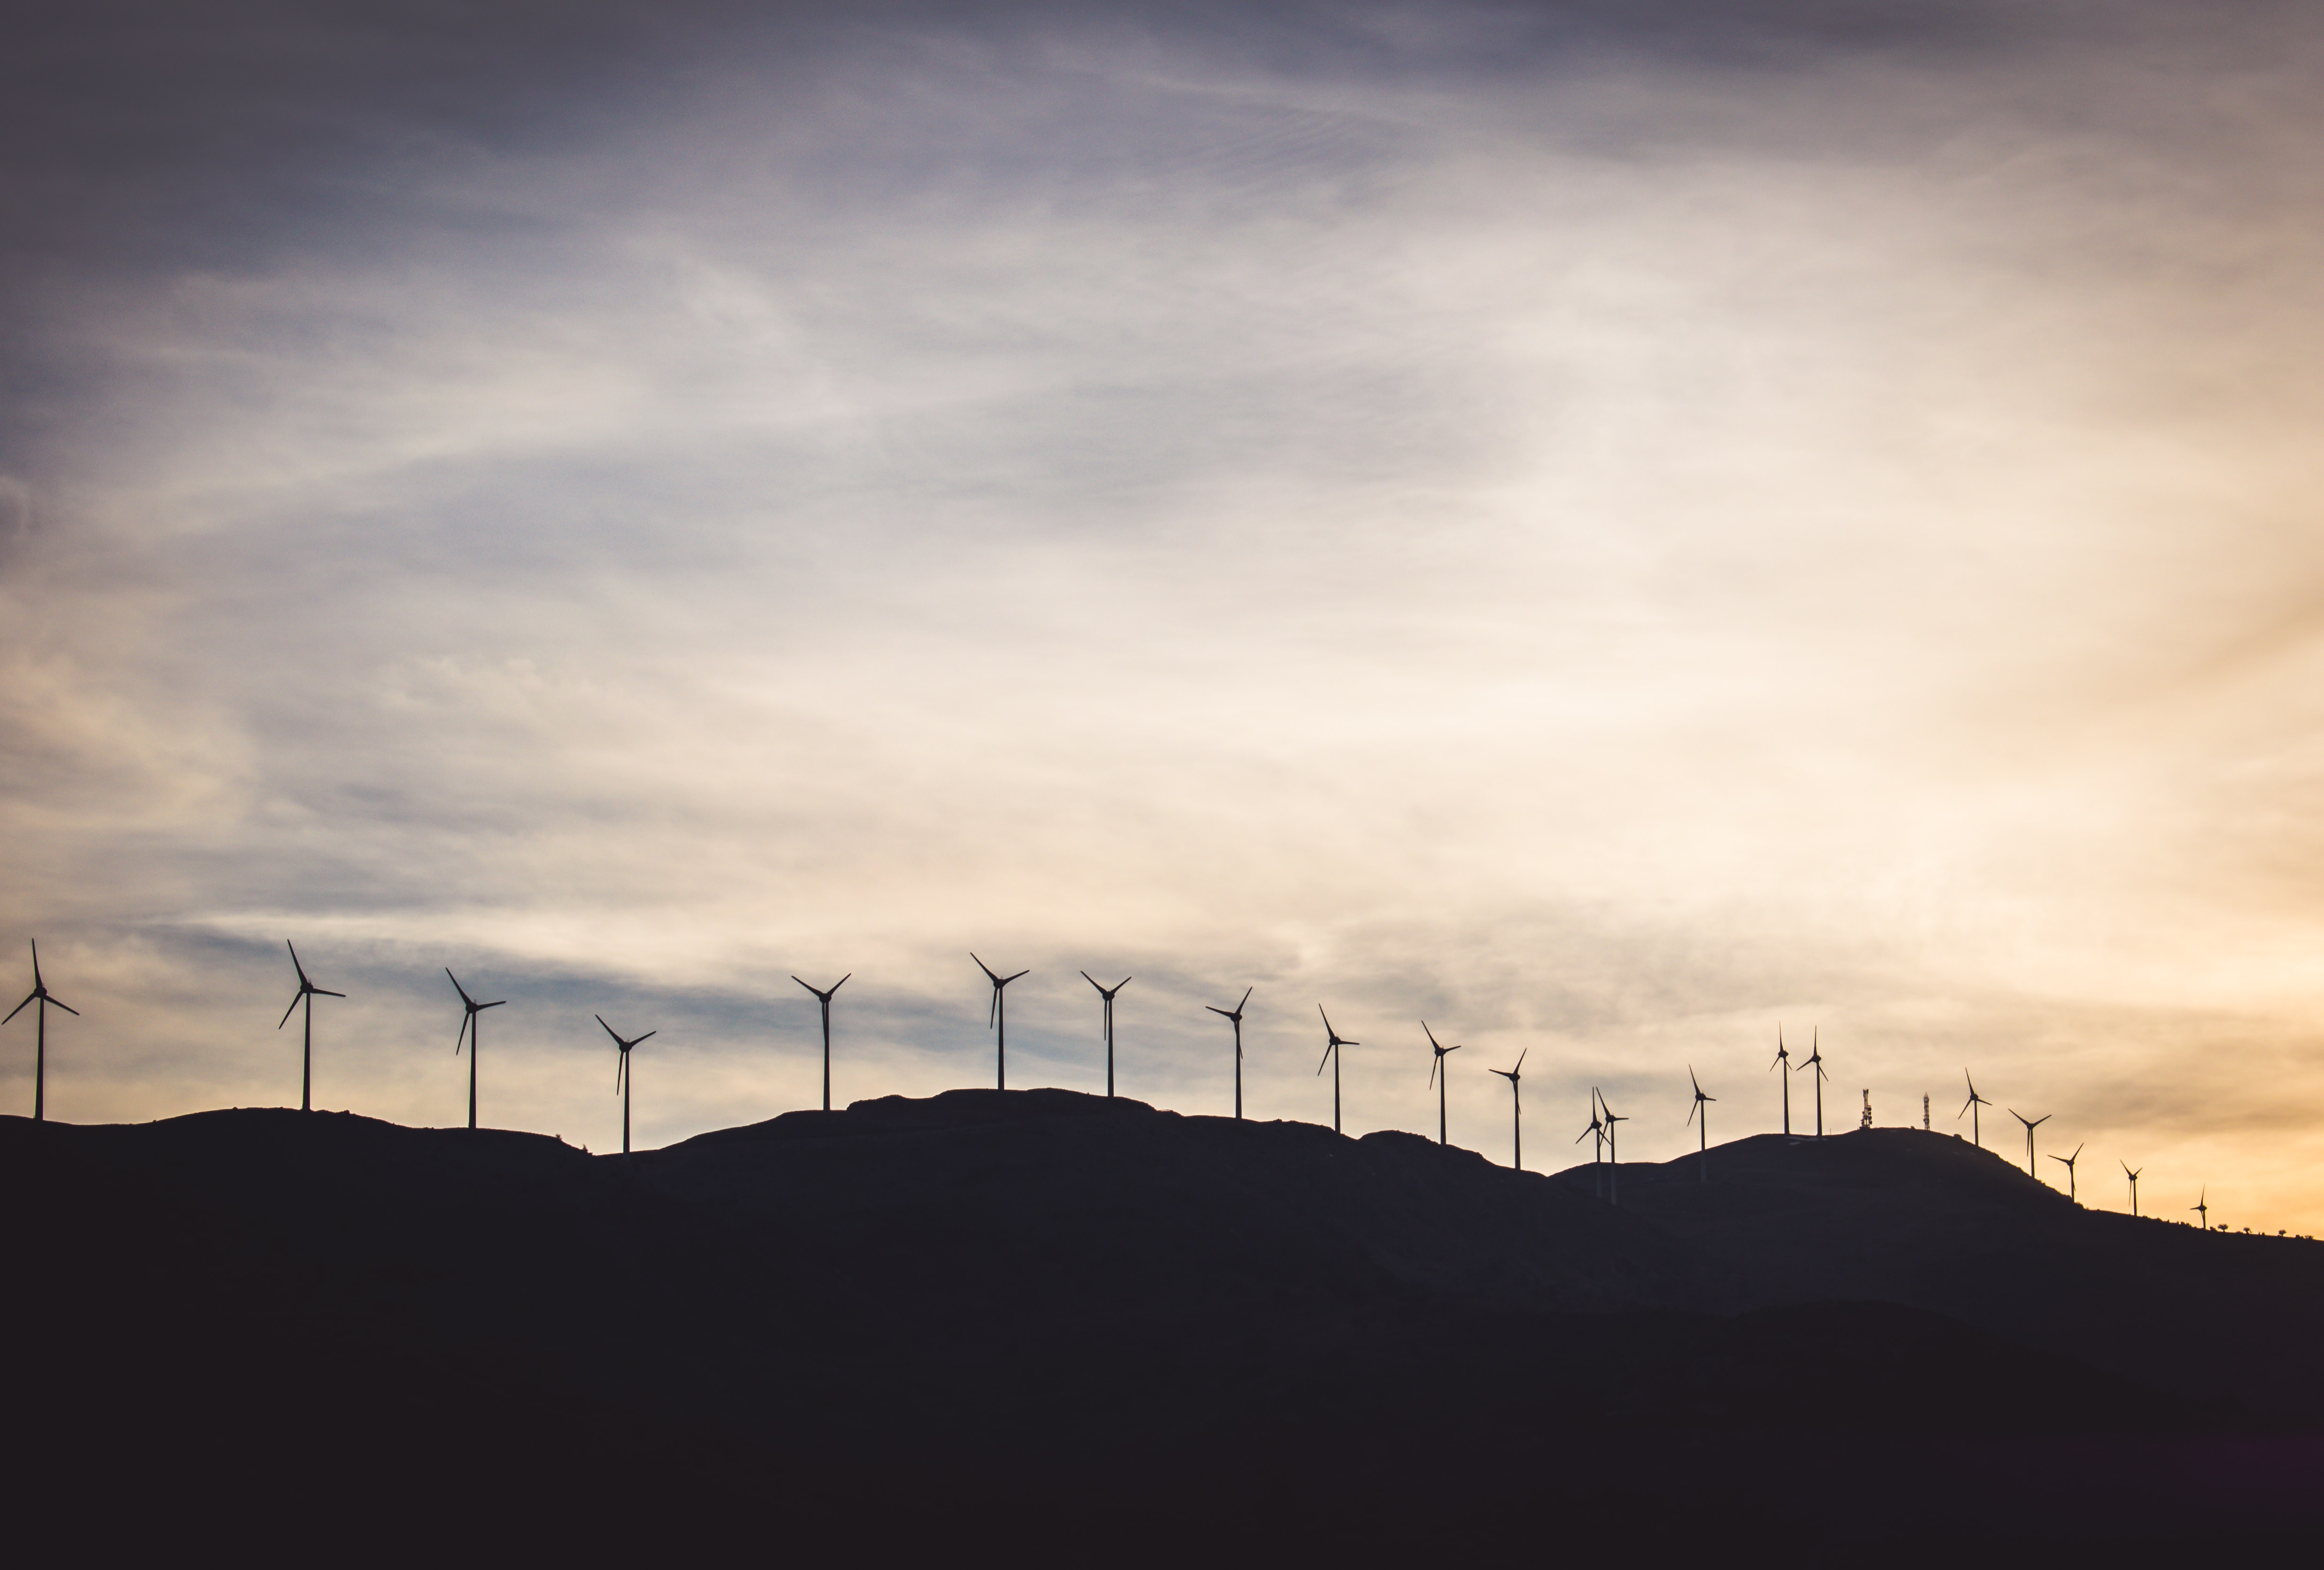 silhouette photo of wind turbines on hill